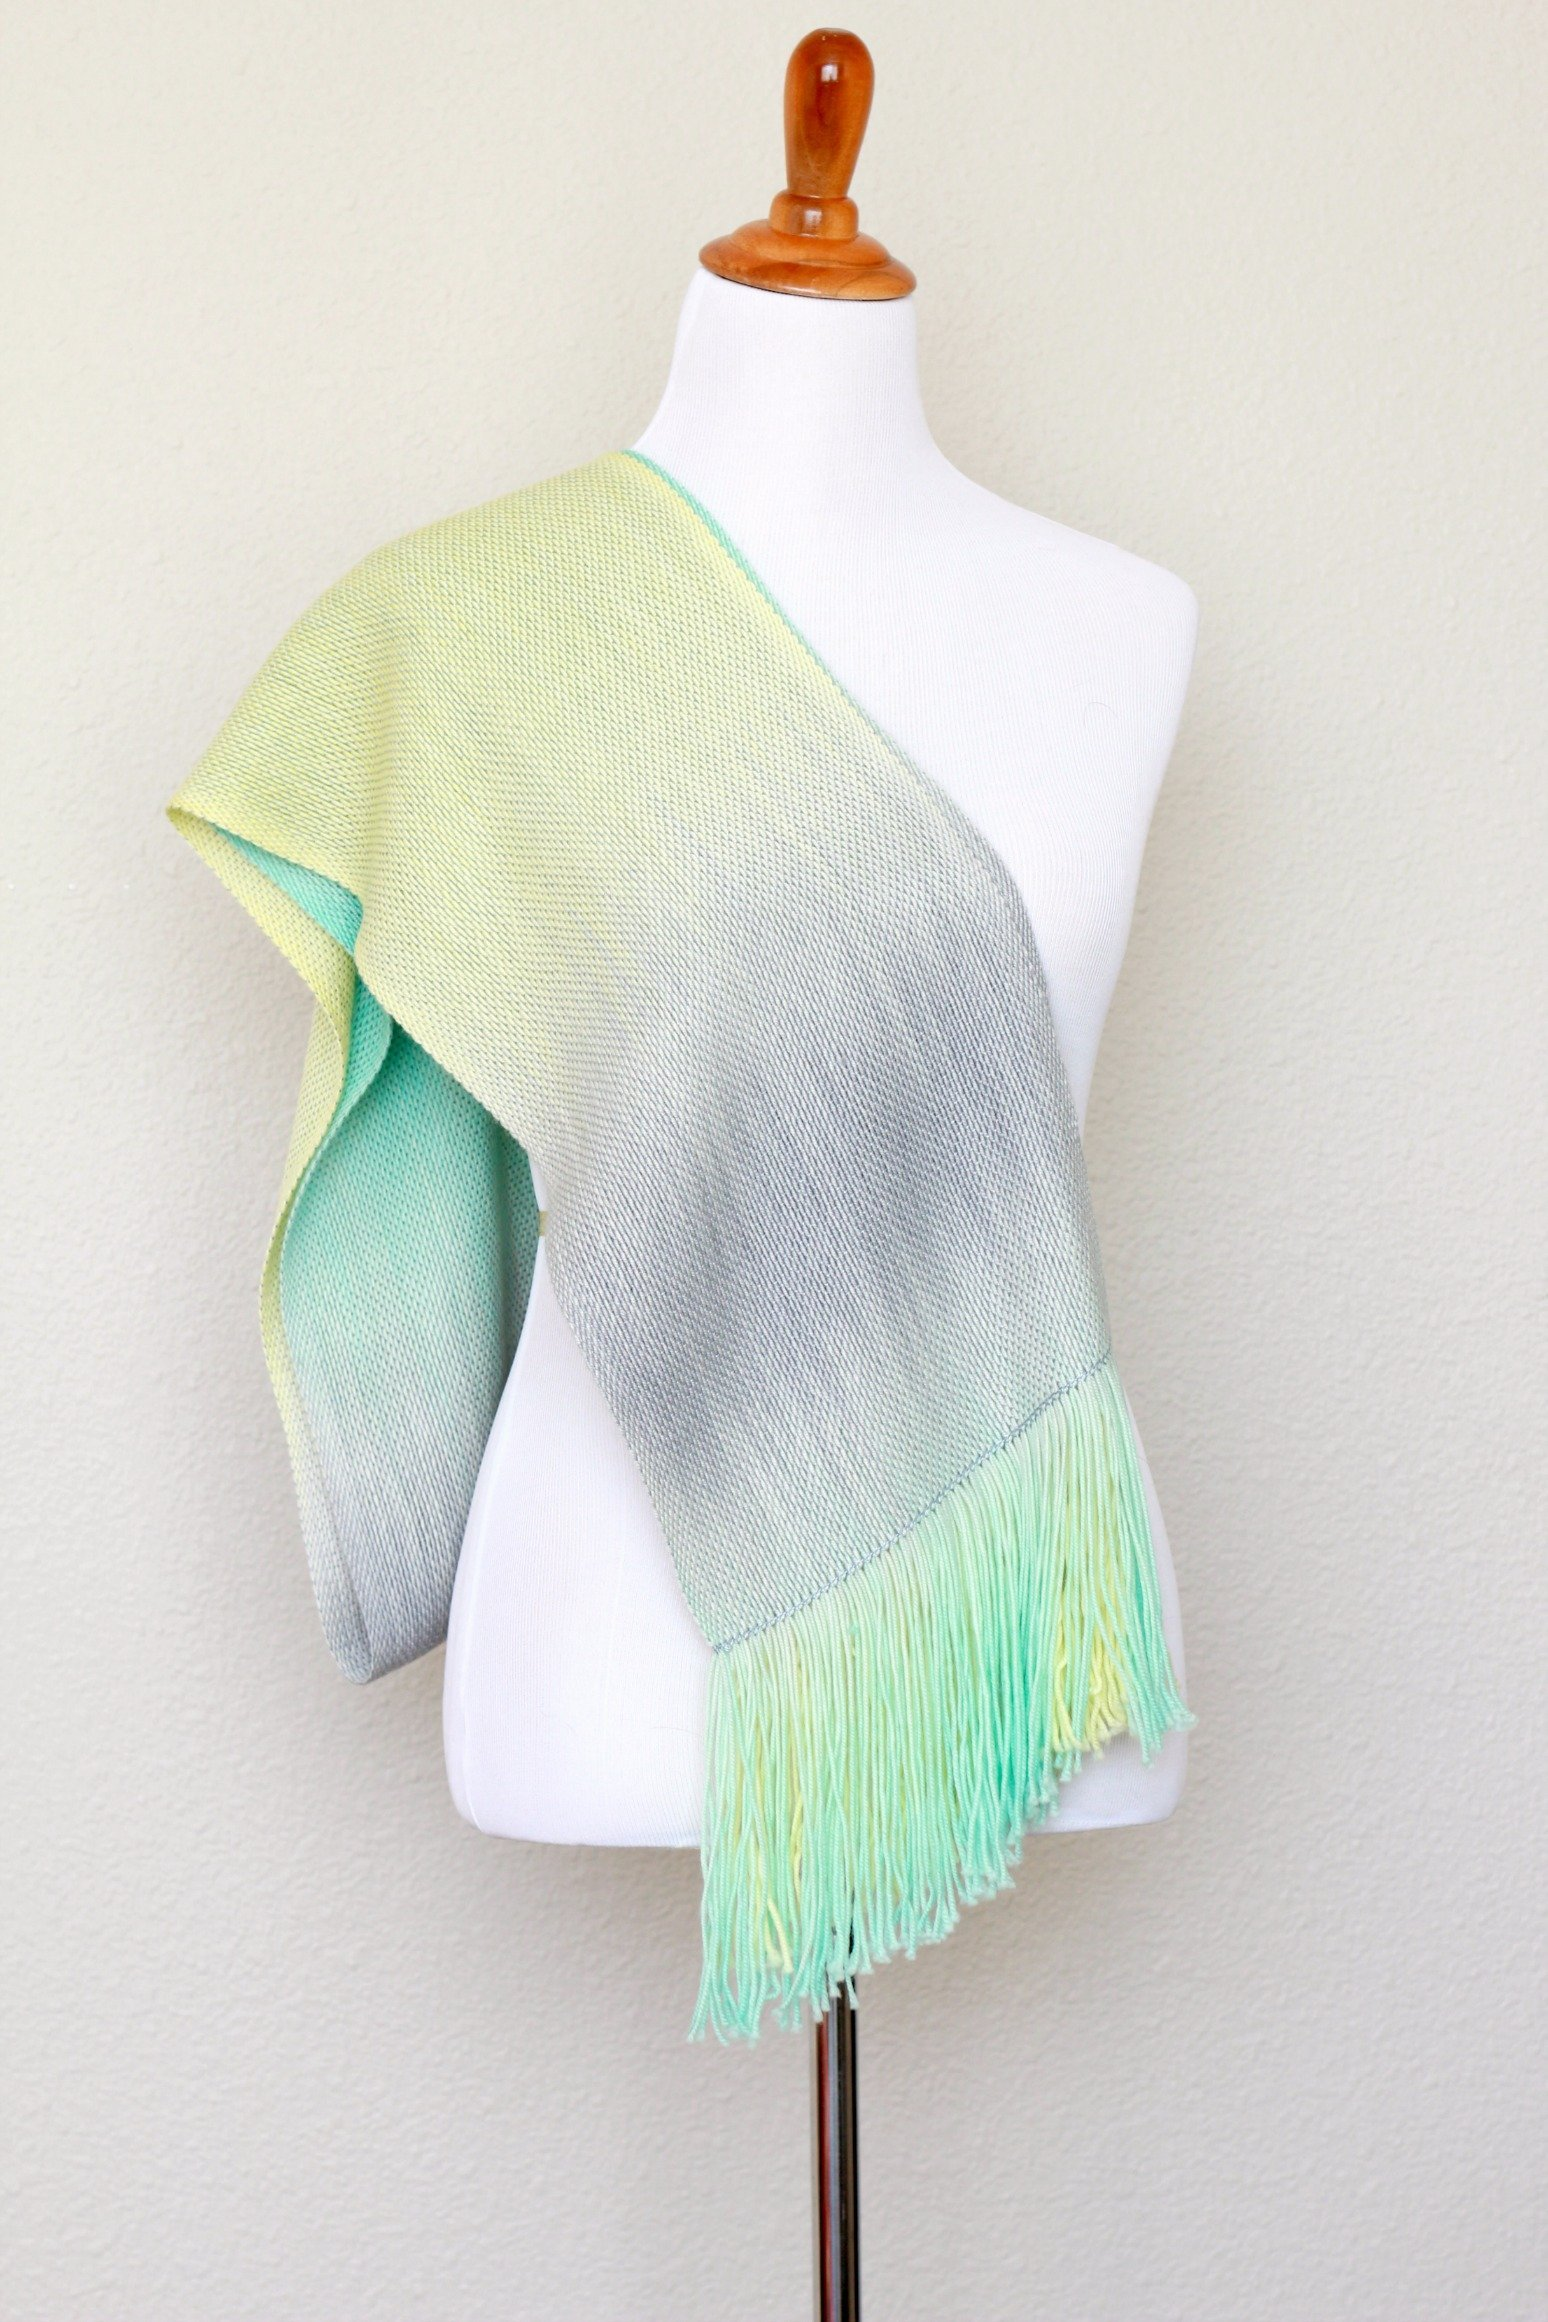 Woven stole, pashmina wrap, yellow mint green, long scarf with fringe, gift for her